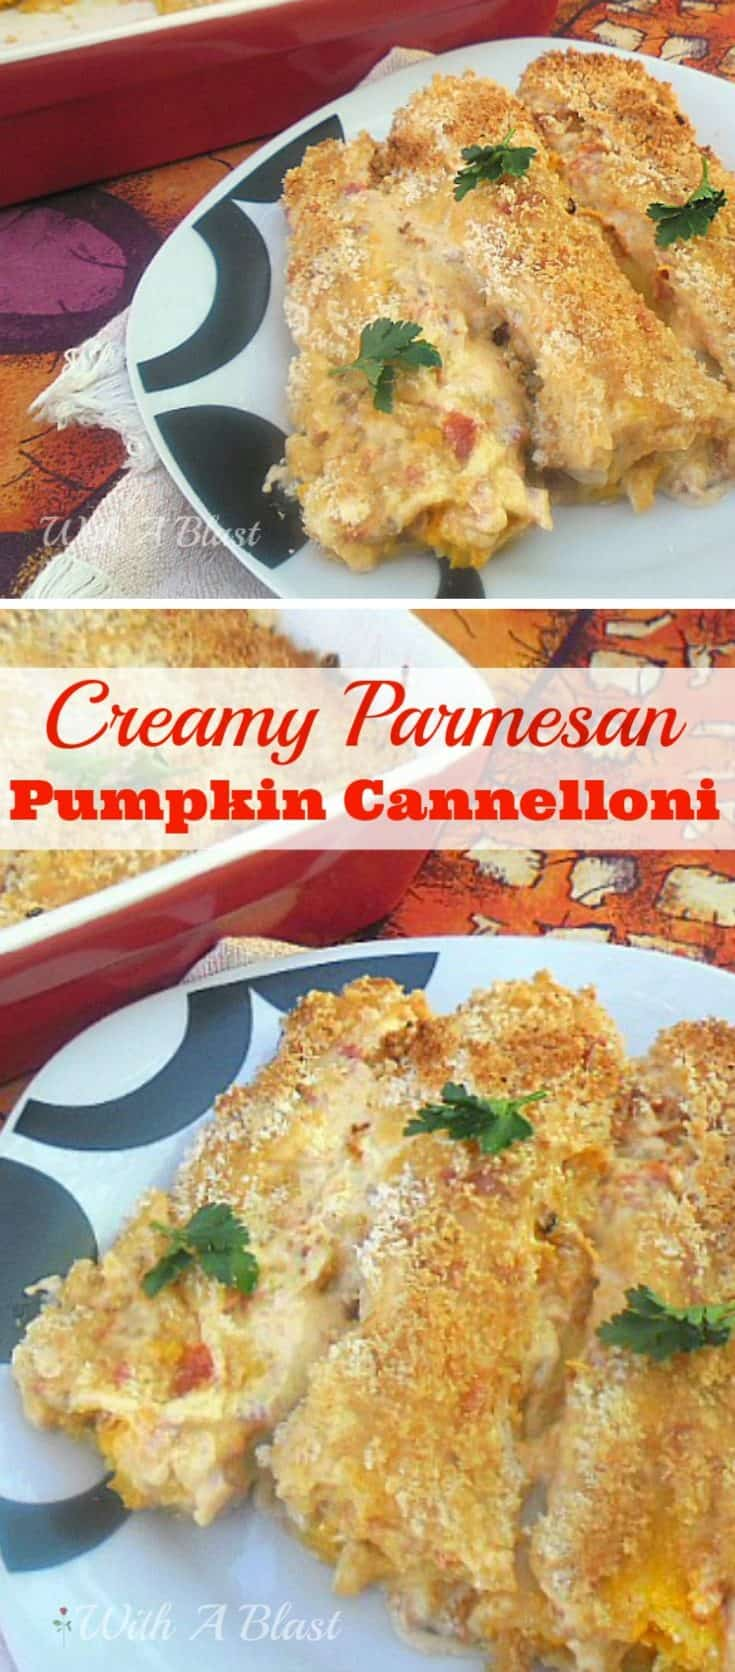 Creamy Parmesan Pumpkin Cannelloni has delicious pumpkin filling baked in a creamy tomato sauce - all topped with a crunchy Parmesan topping [side or meatless main dish] #PumpkinSide #MeatlessDinner #PumpkinPasta #EasyPumpkinPasta